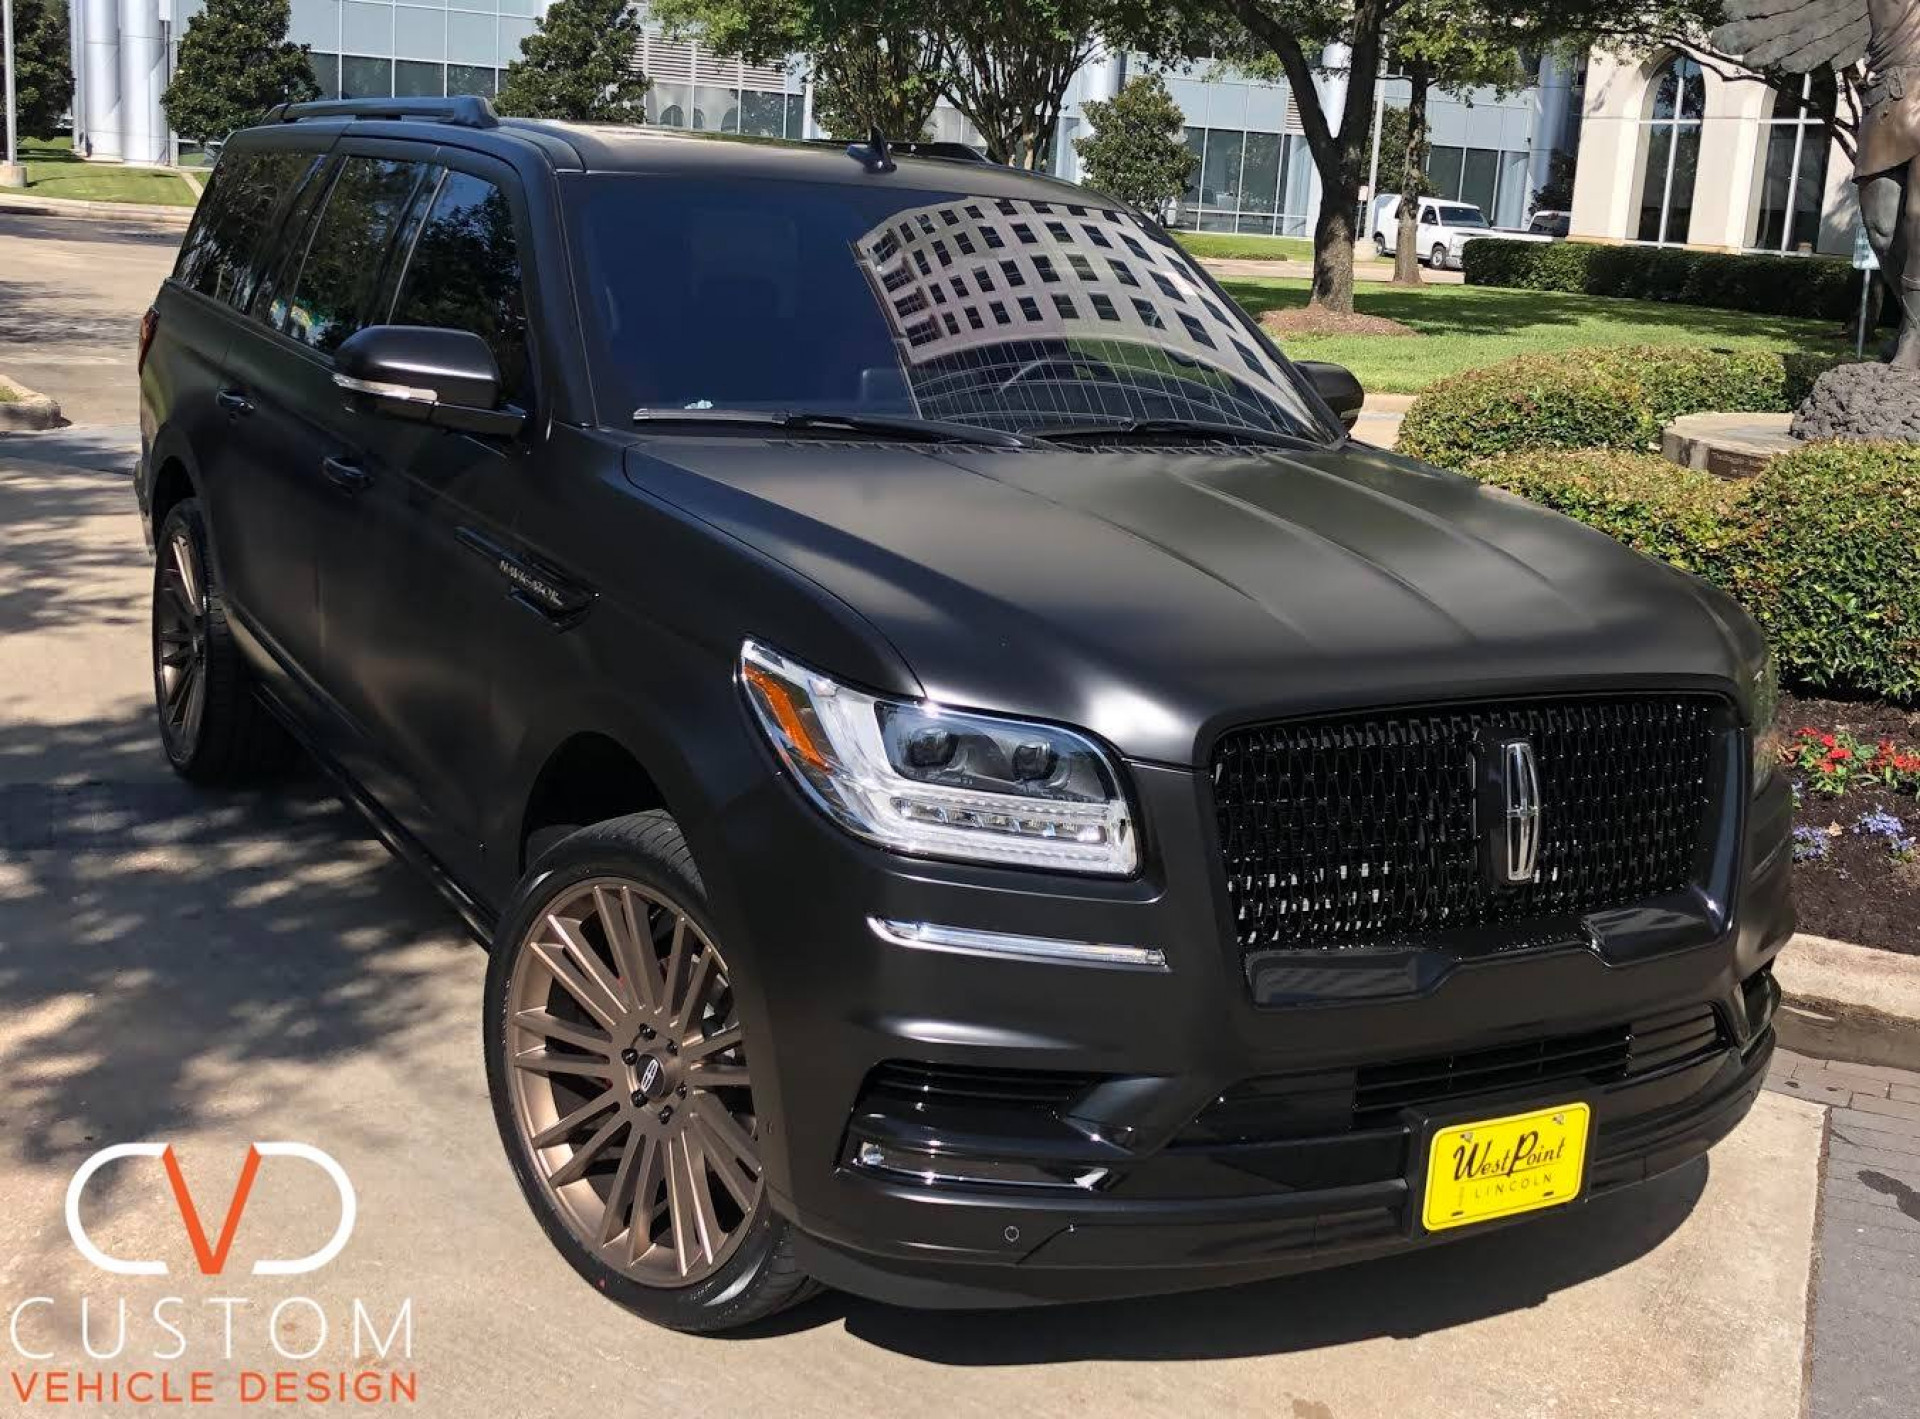 "2021 Lincoln Navigator with 24"" Satin Bronze wheels and 24"" Vogue Signature V Tyres"